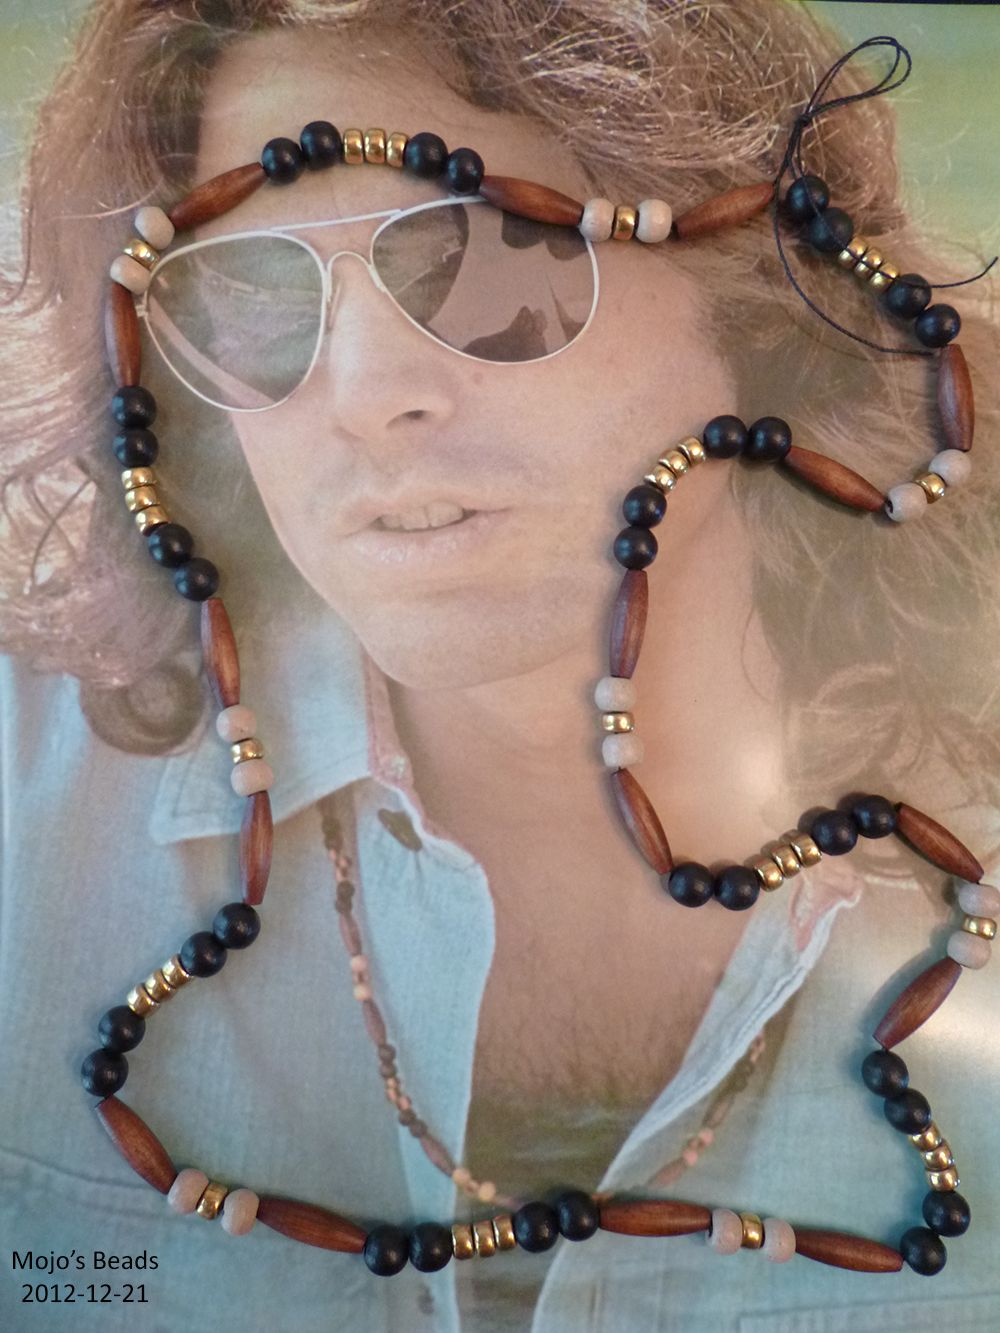 9c760444ae6b4 This is an exact replica of a love bead necklace that Jim Morrison ...